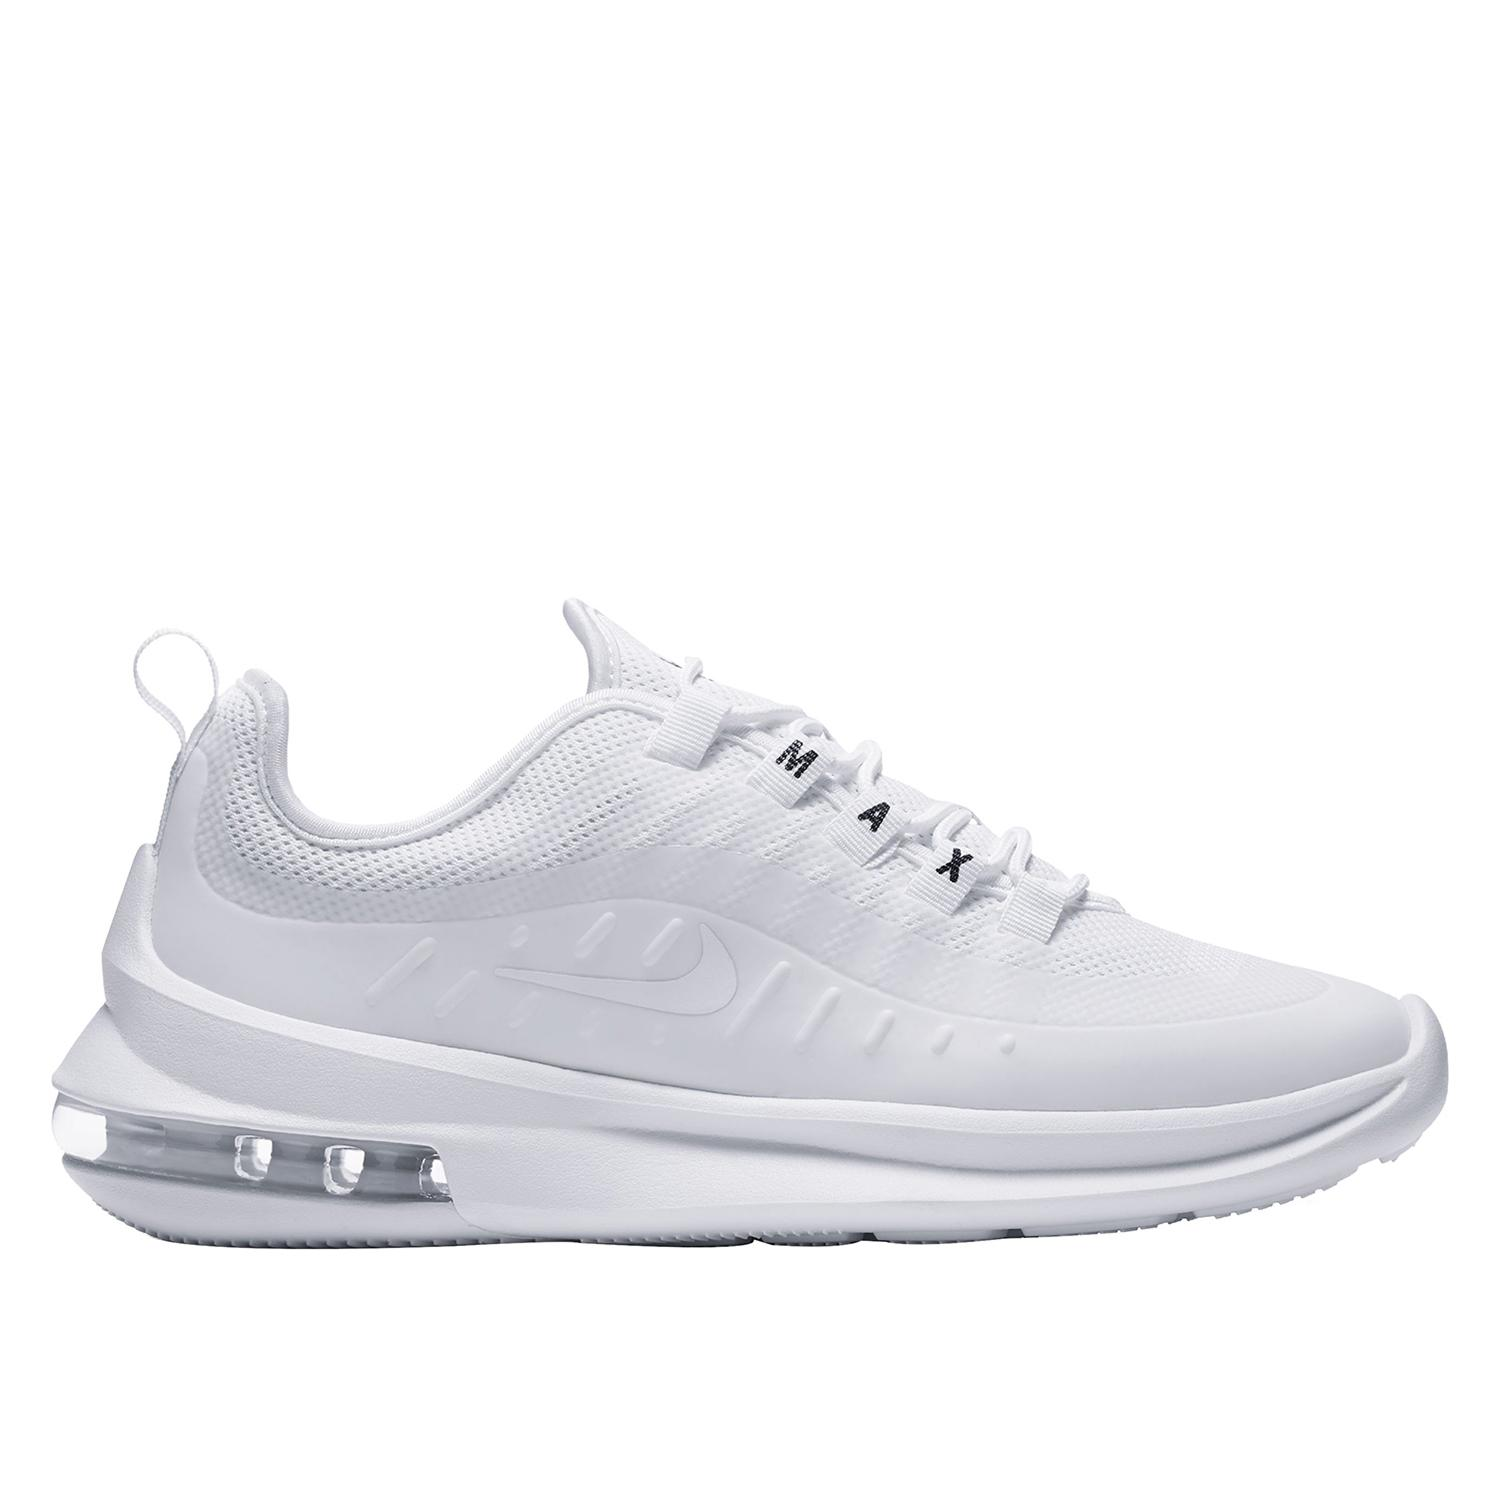 4638816b5553 Nike Air Max Axis Women s Casual Shoe in White - Intersport Australia